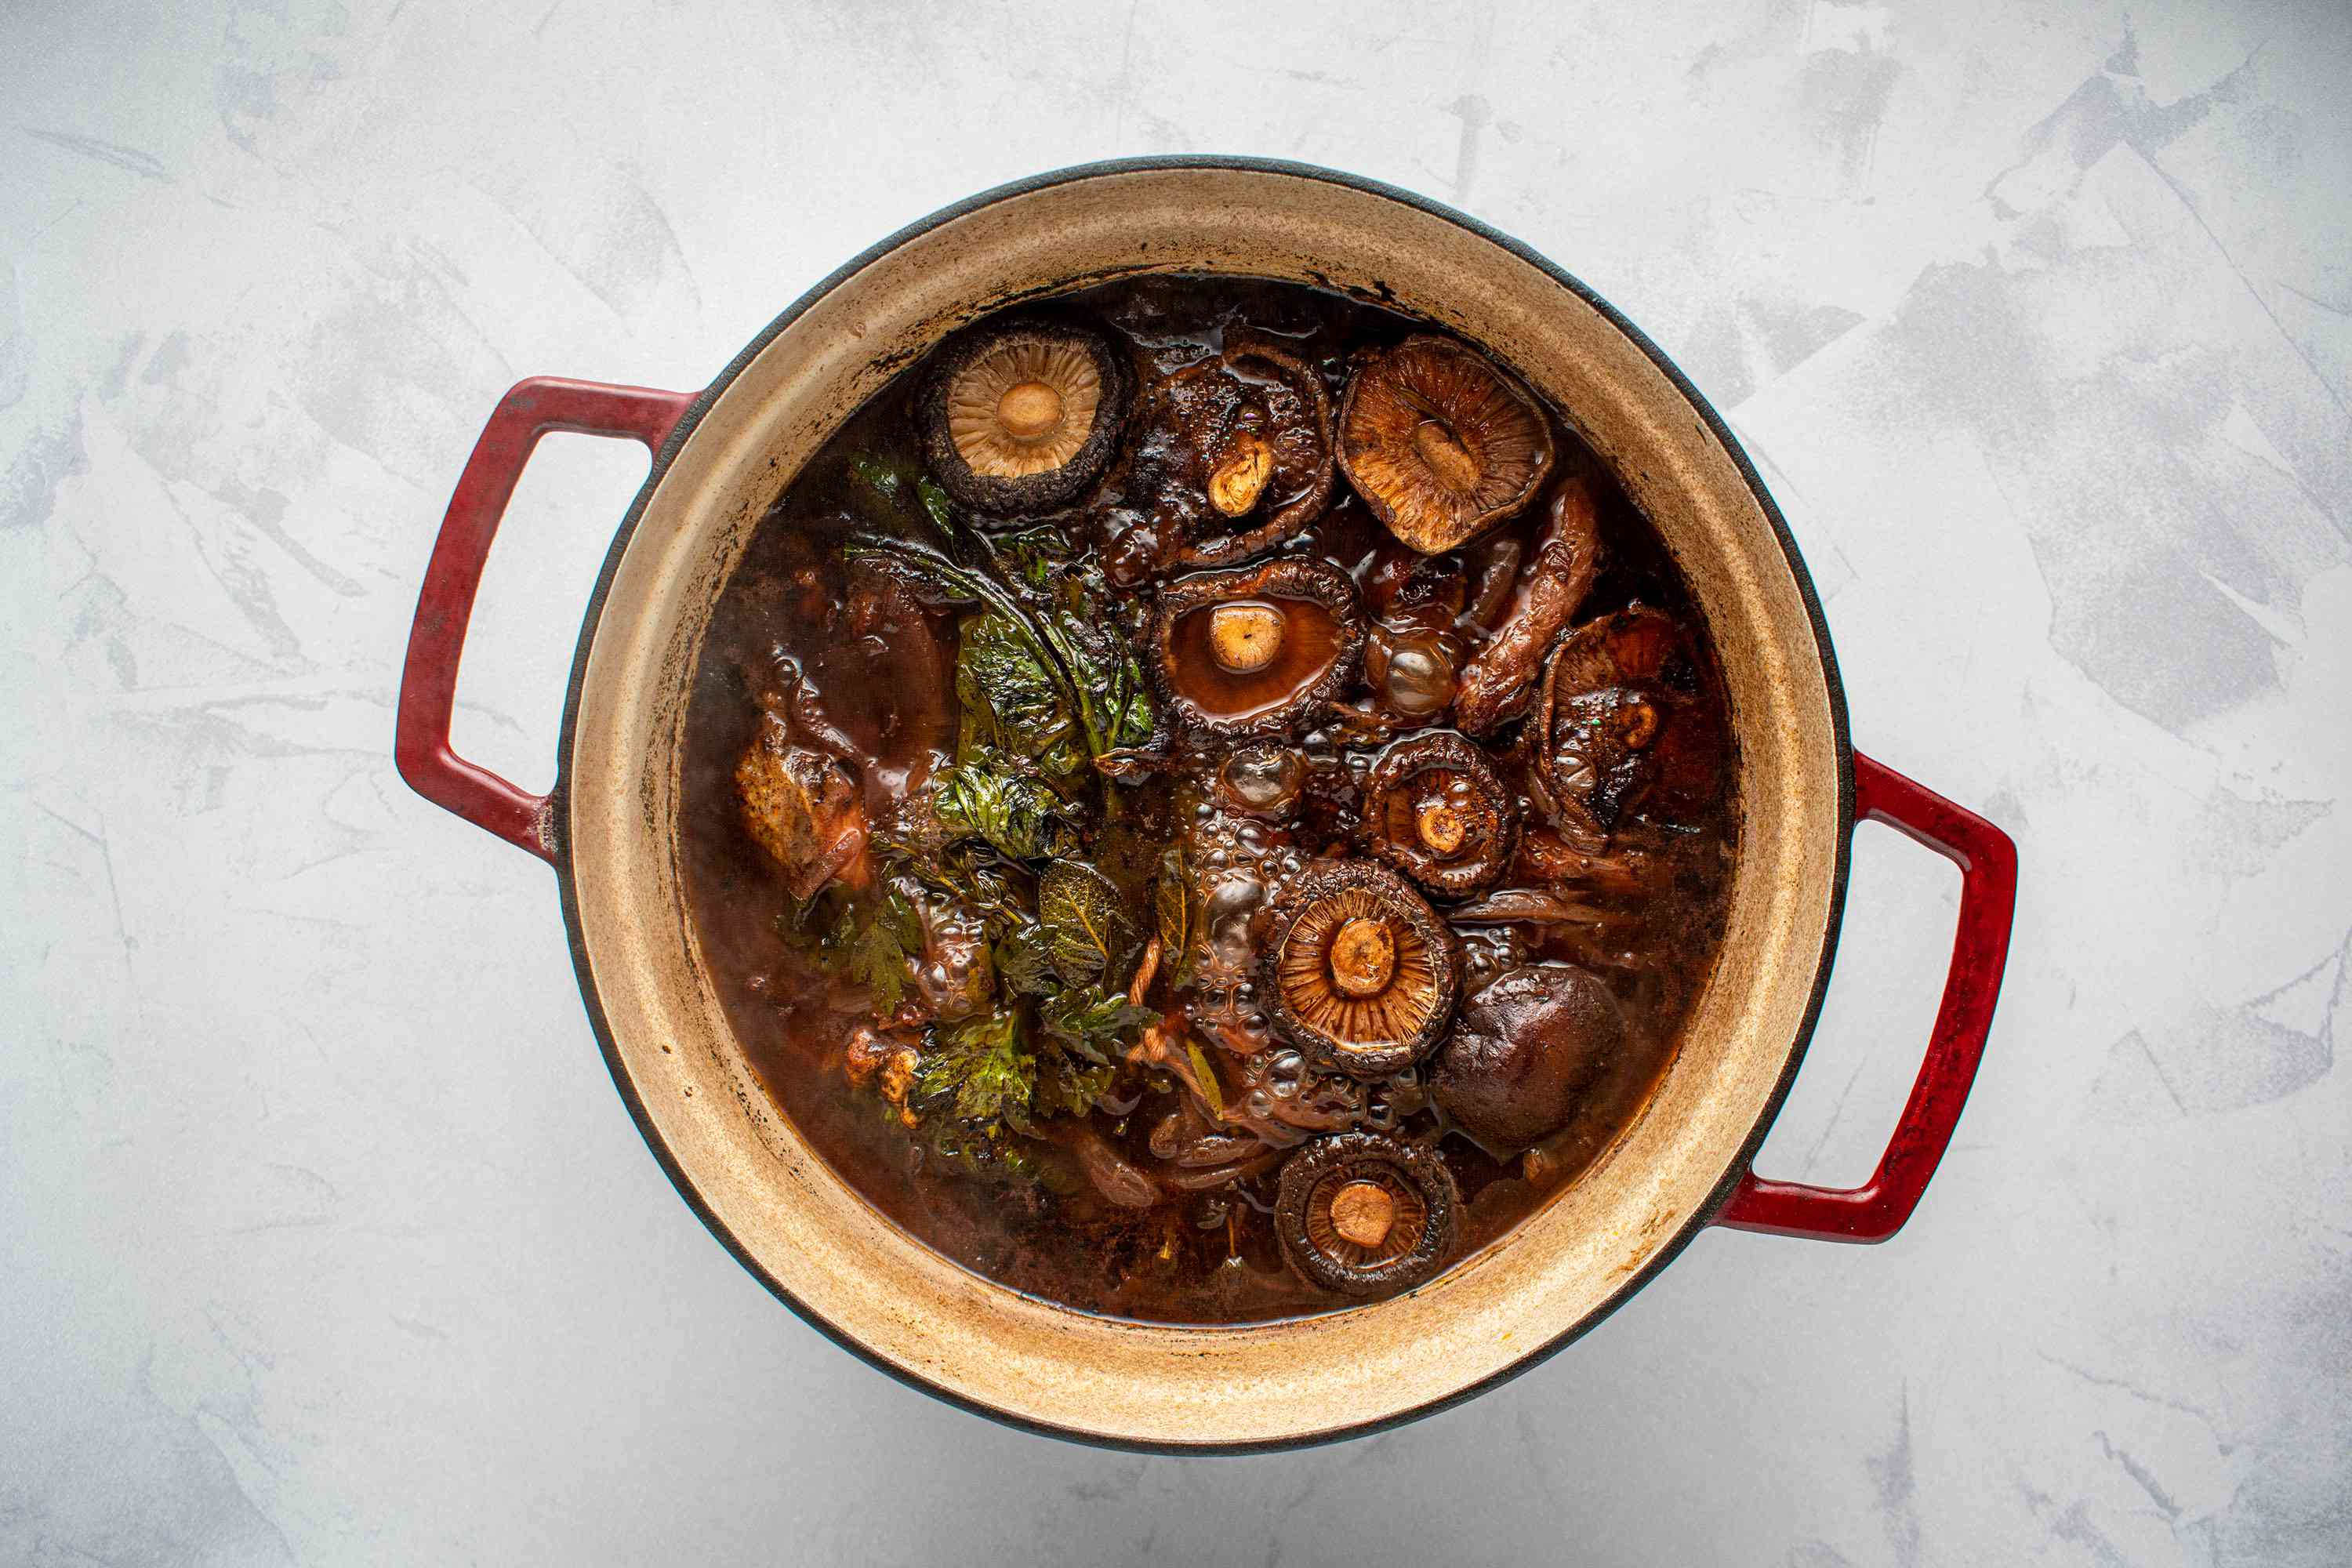 broth cooking in a pot